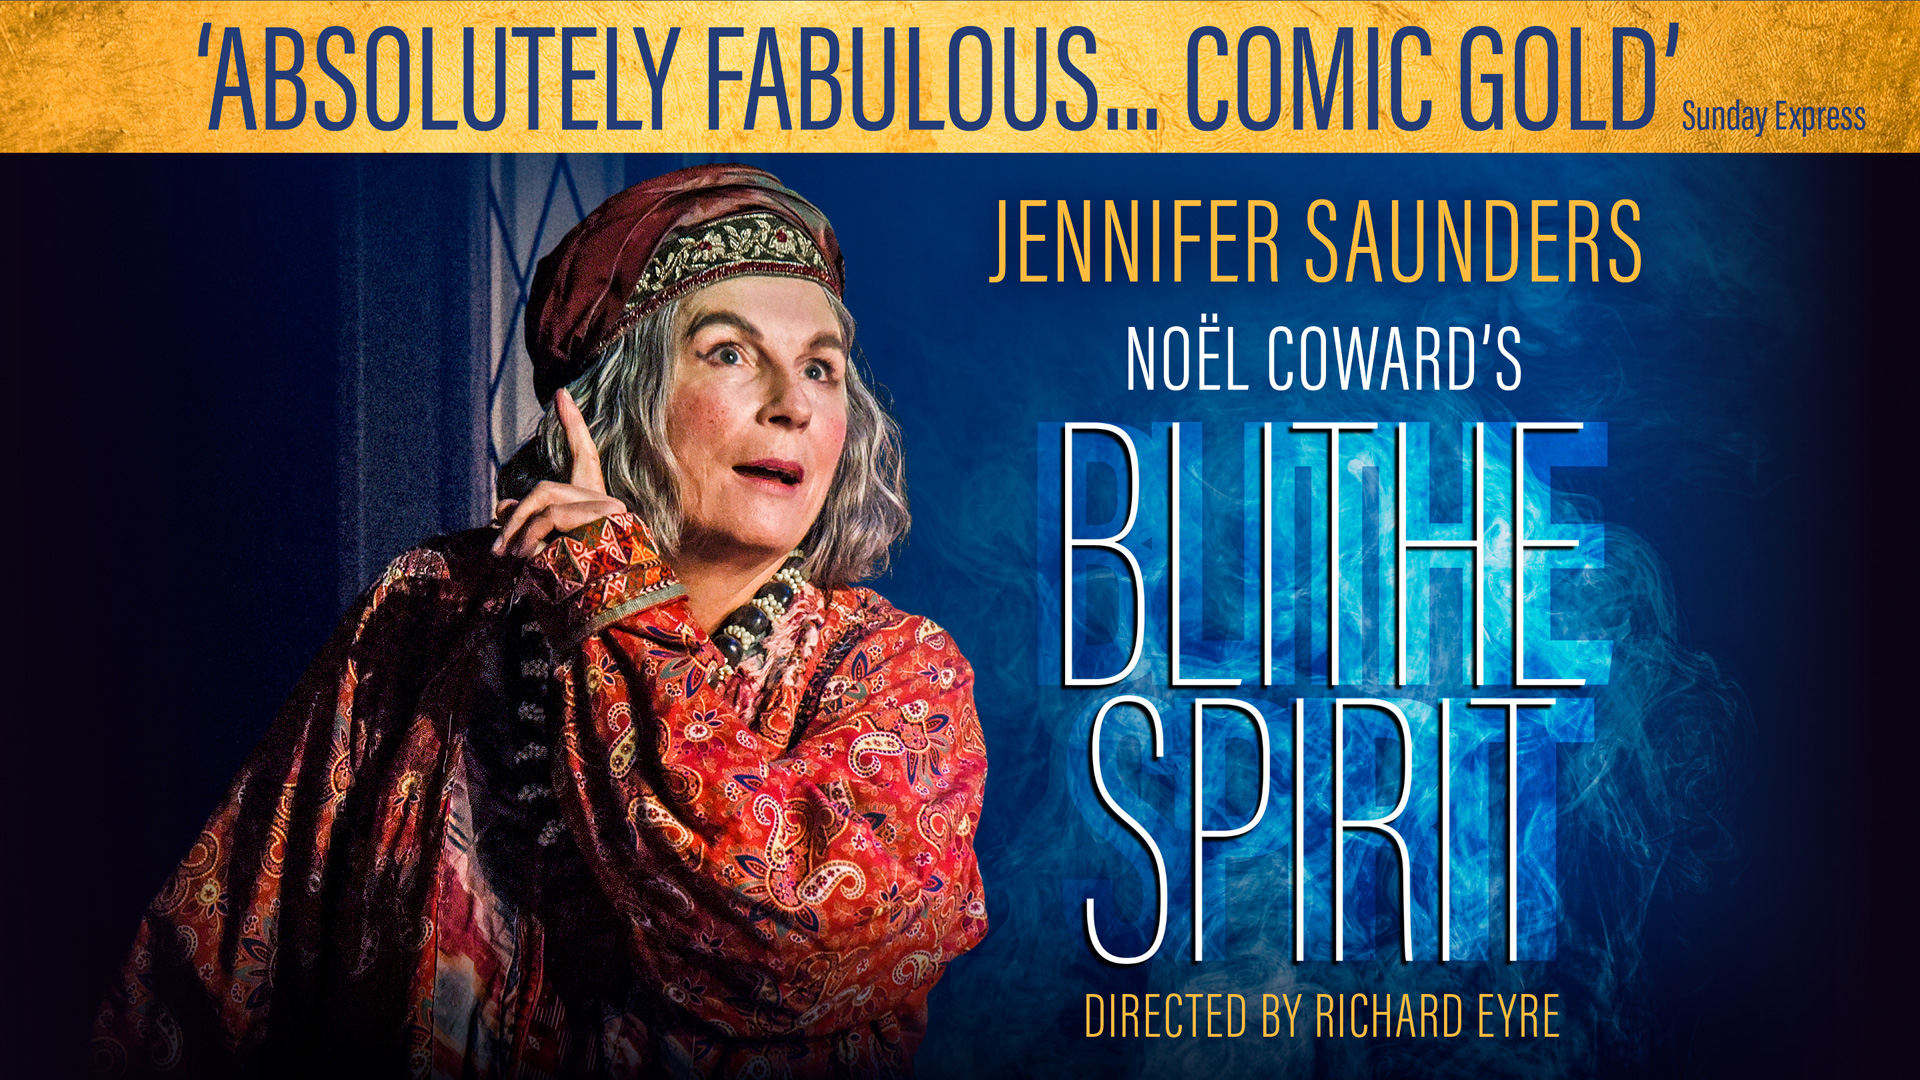 title artwork for Blithe Spirit by Noel Coward featuring Jennifer Saunders